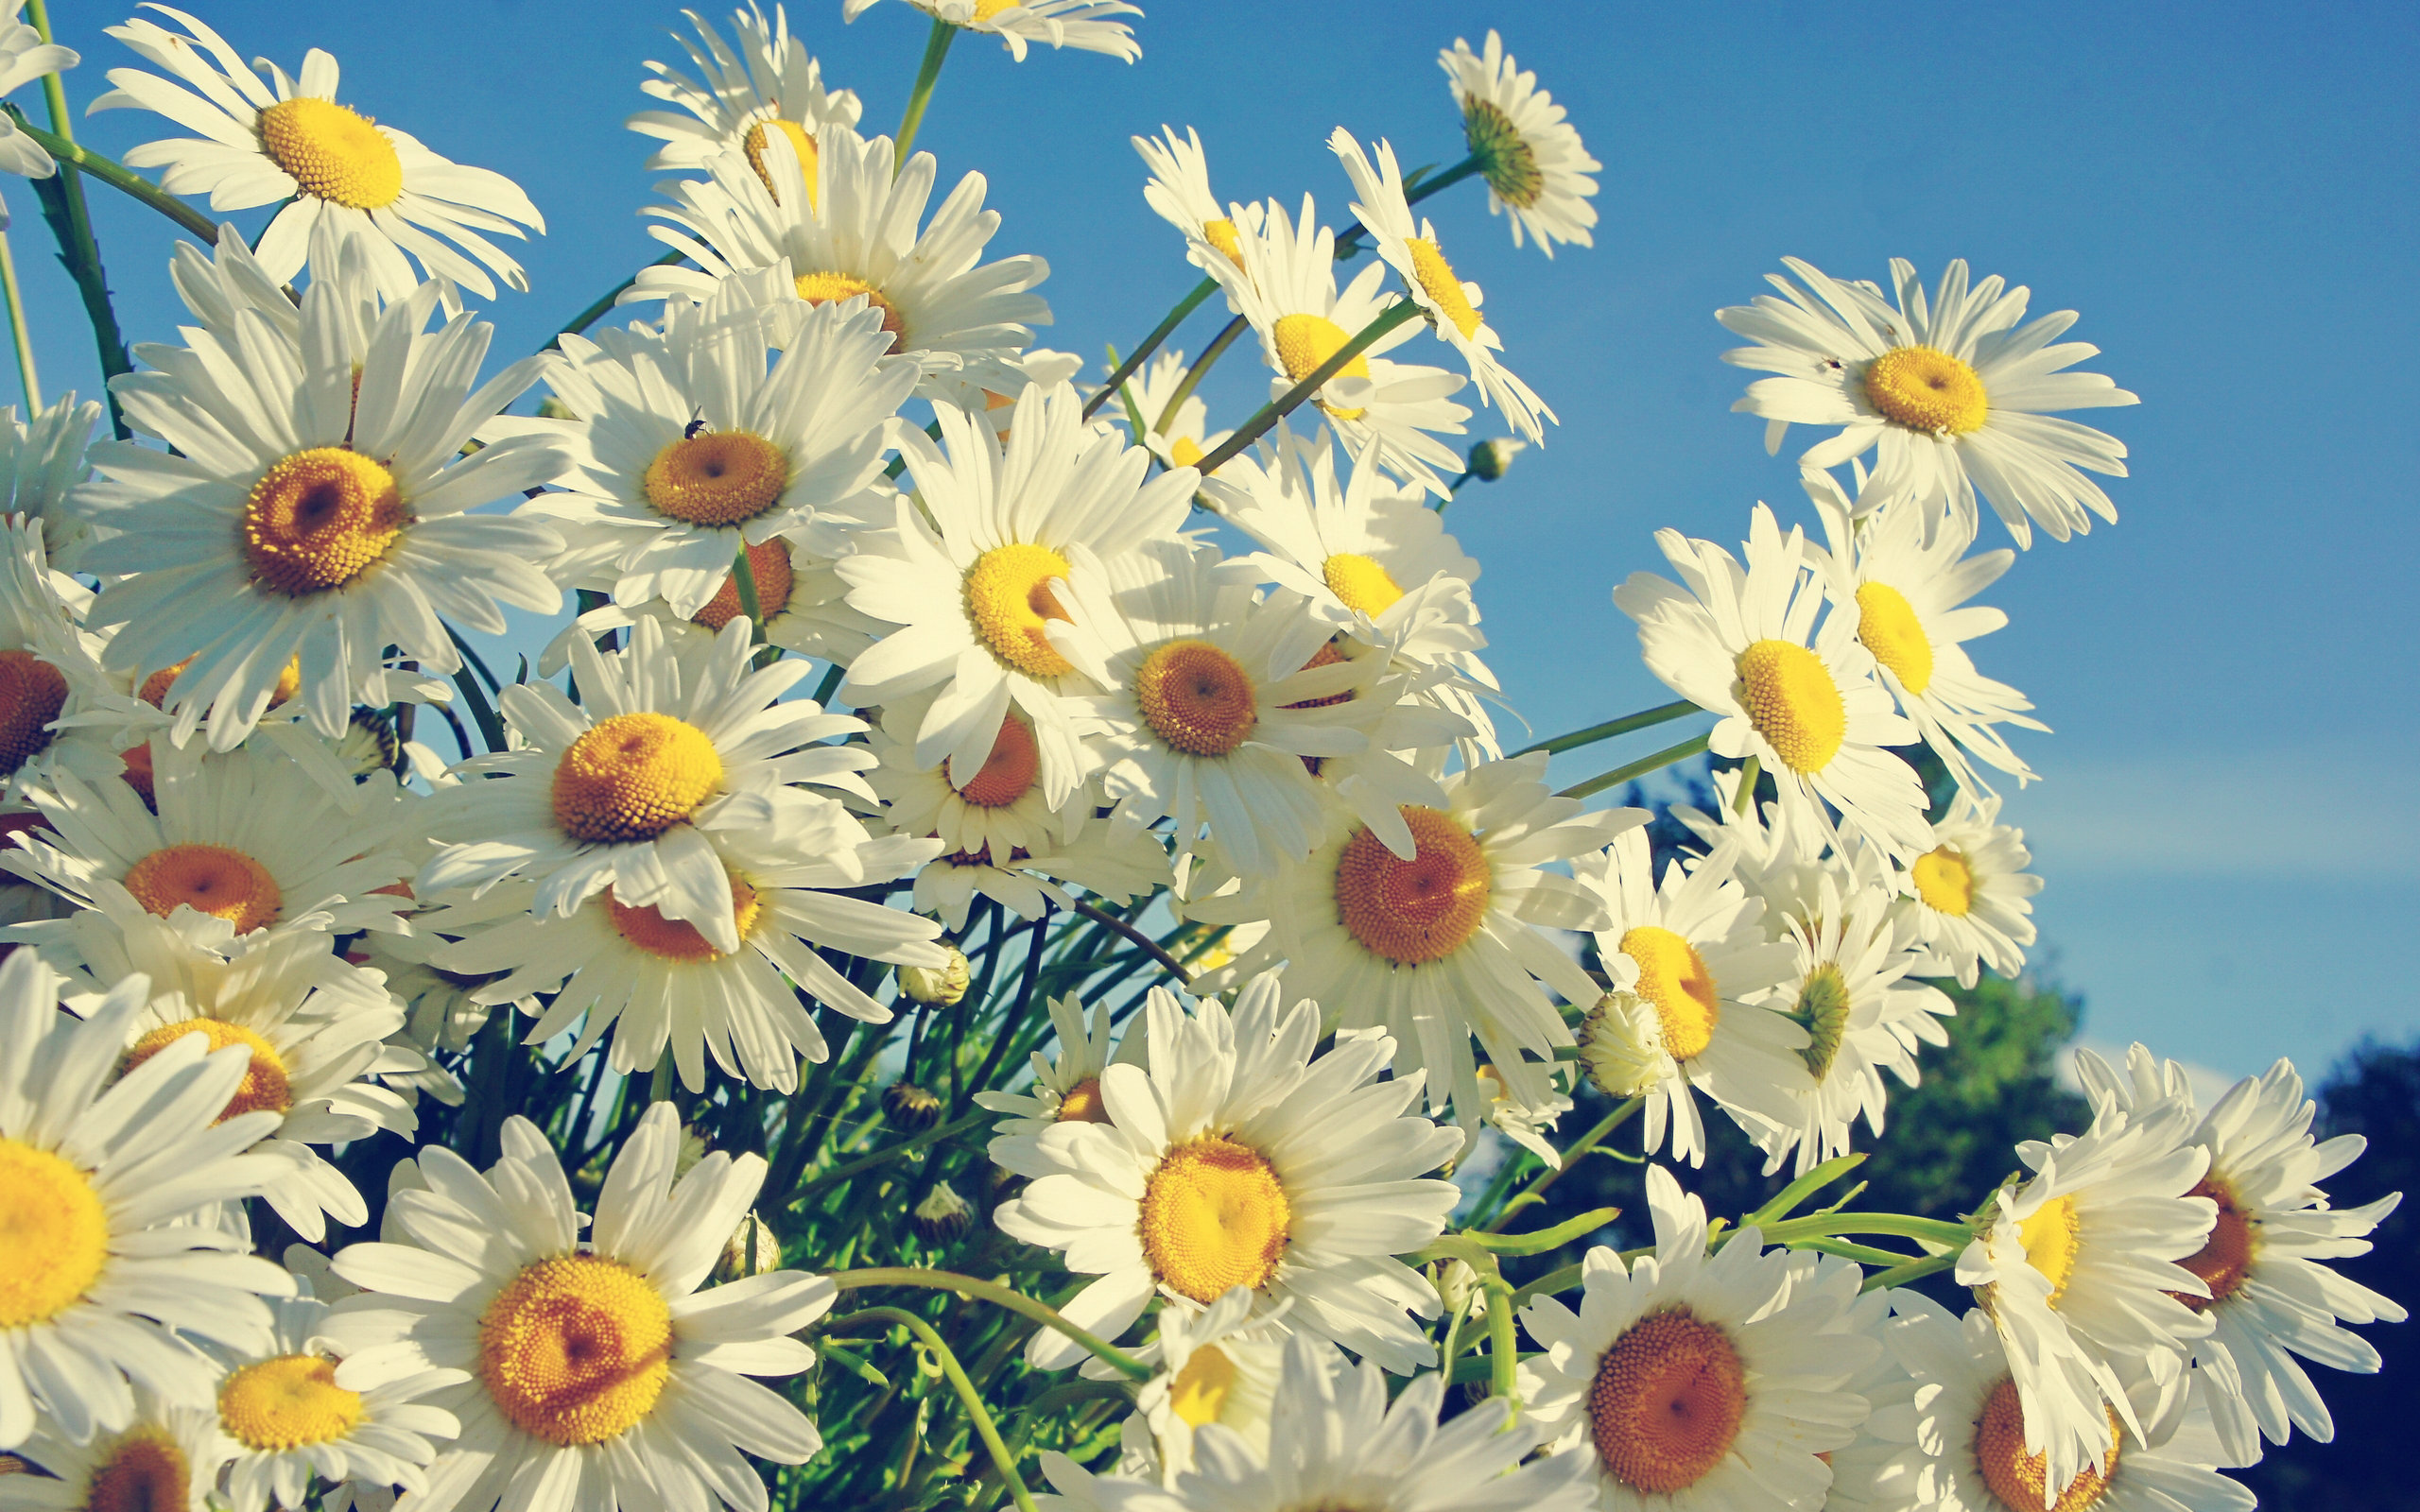 picture of a daisy flower   HD Desktop Wallpapers   4k HD